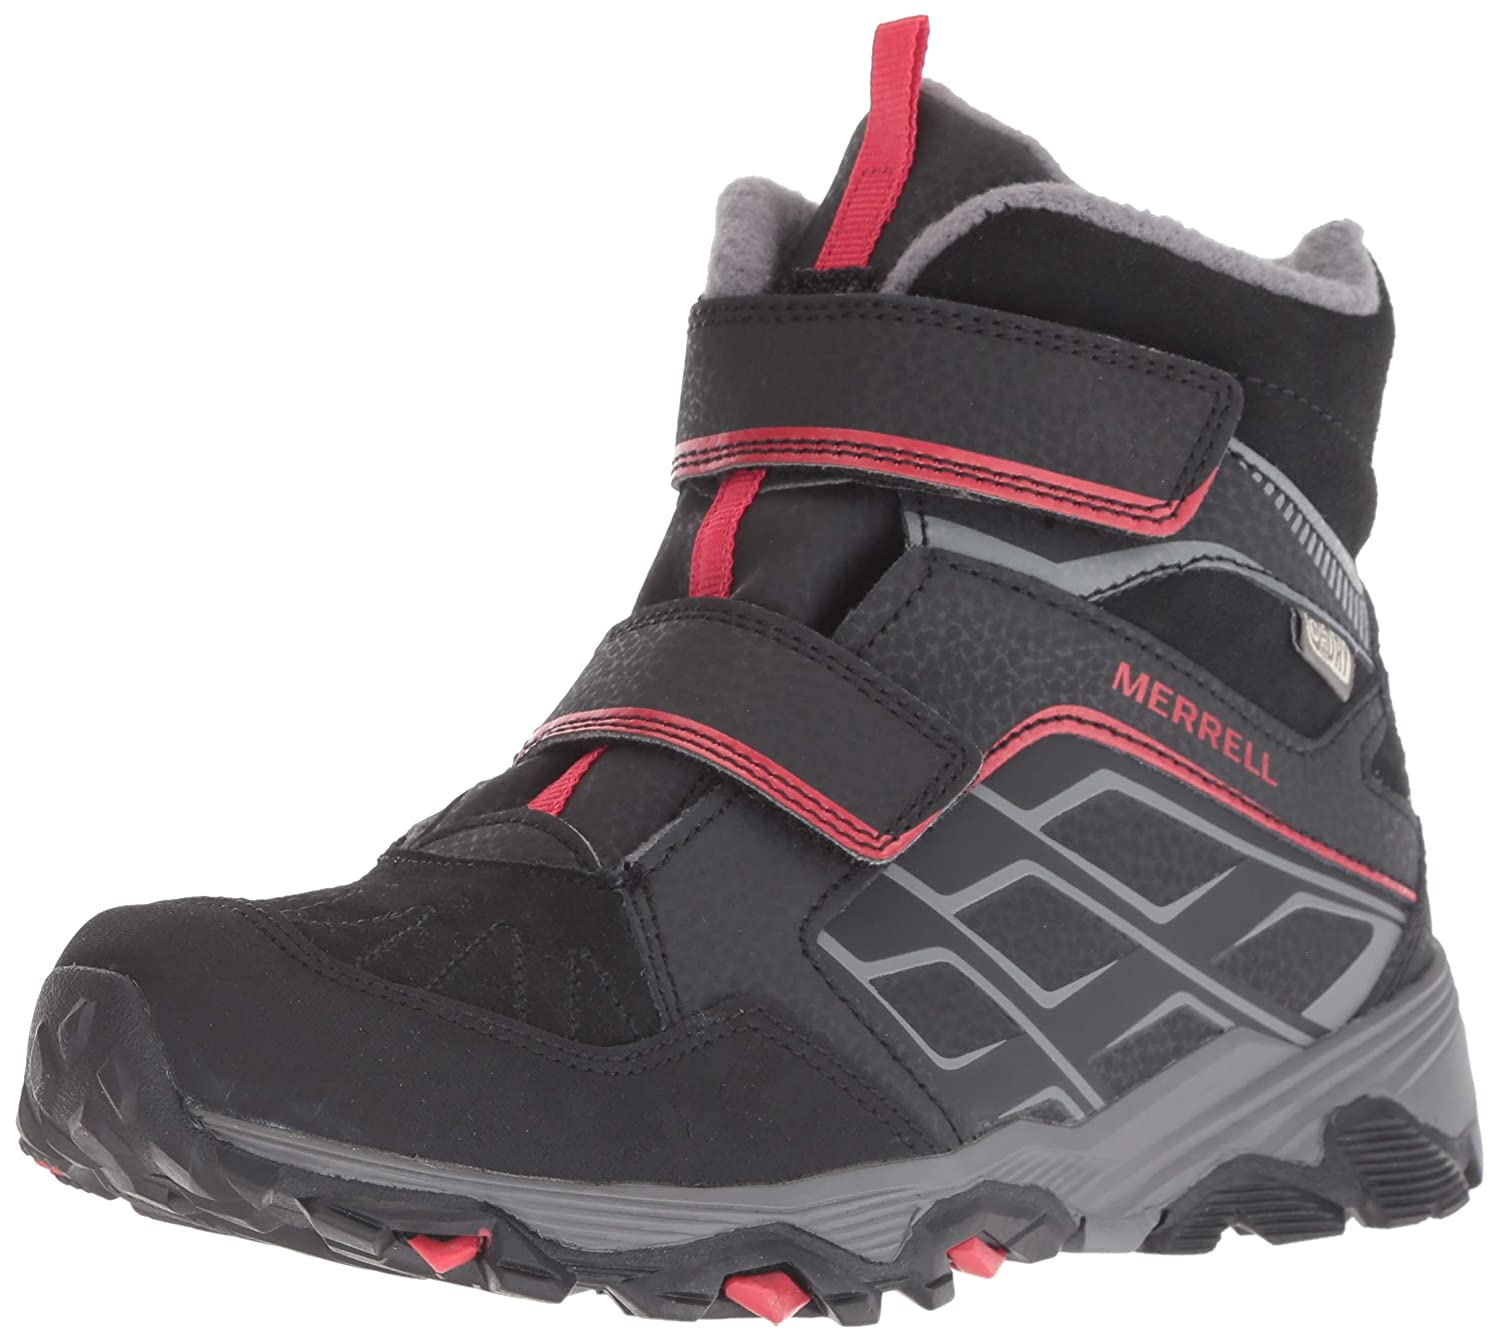 Merrell Kids' Moab FST Polar Mid aC Waterproof Hiking Boot